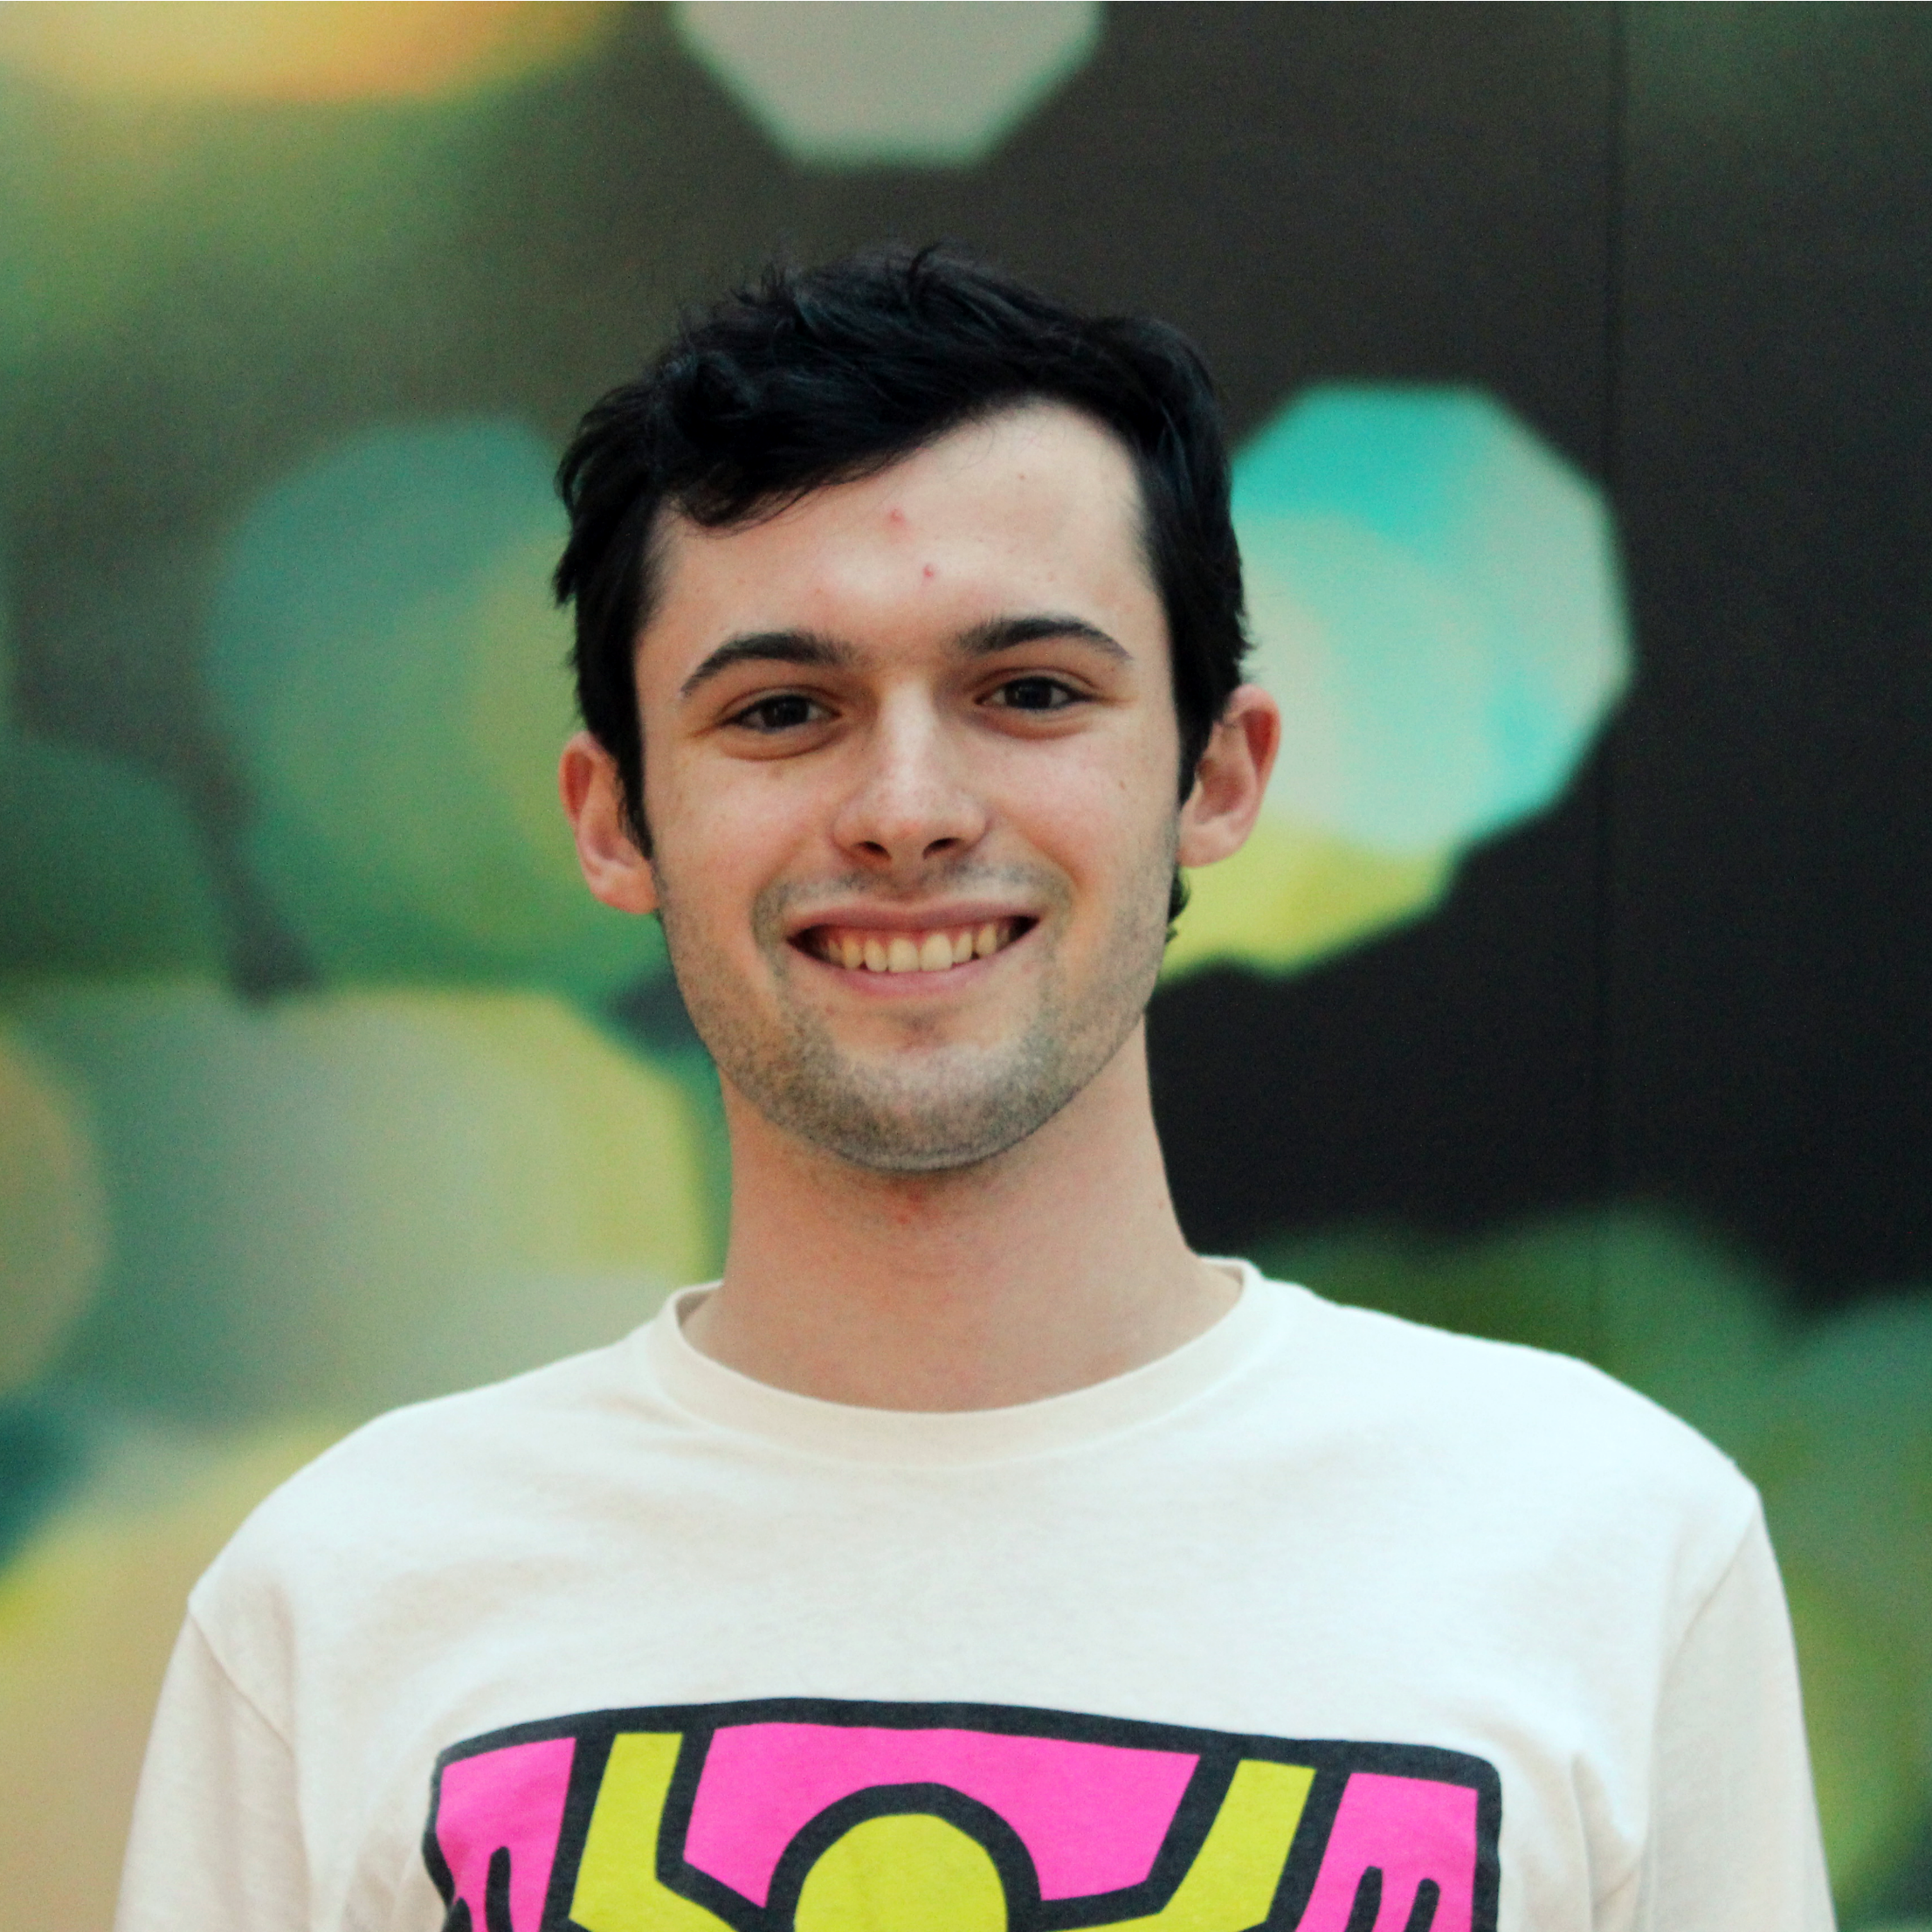 William DeLay - Co-President   William is a senior from Maryland majoring in Economics, planning to work at a fin-tech startup after graduation in May 2018. Outside of class, William has a passion for running and camping, anything to get him out of New York. This is William's second year helping to plan TigerLaunch.